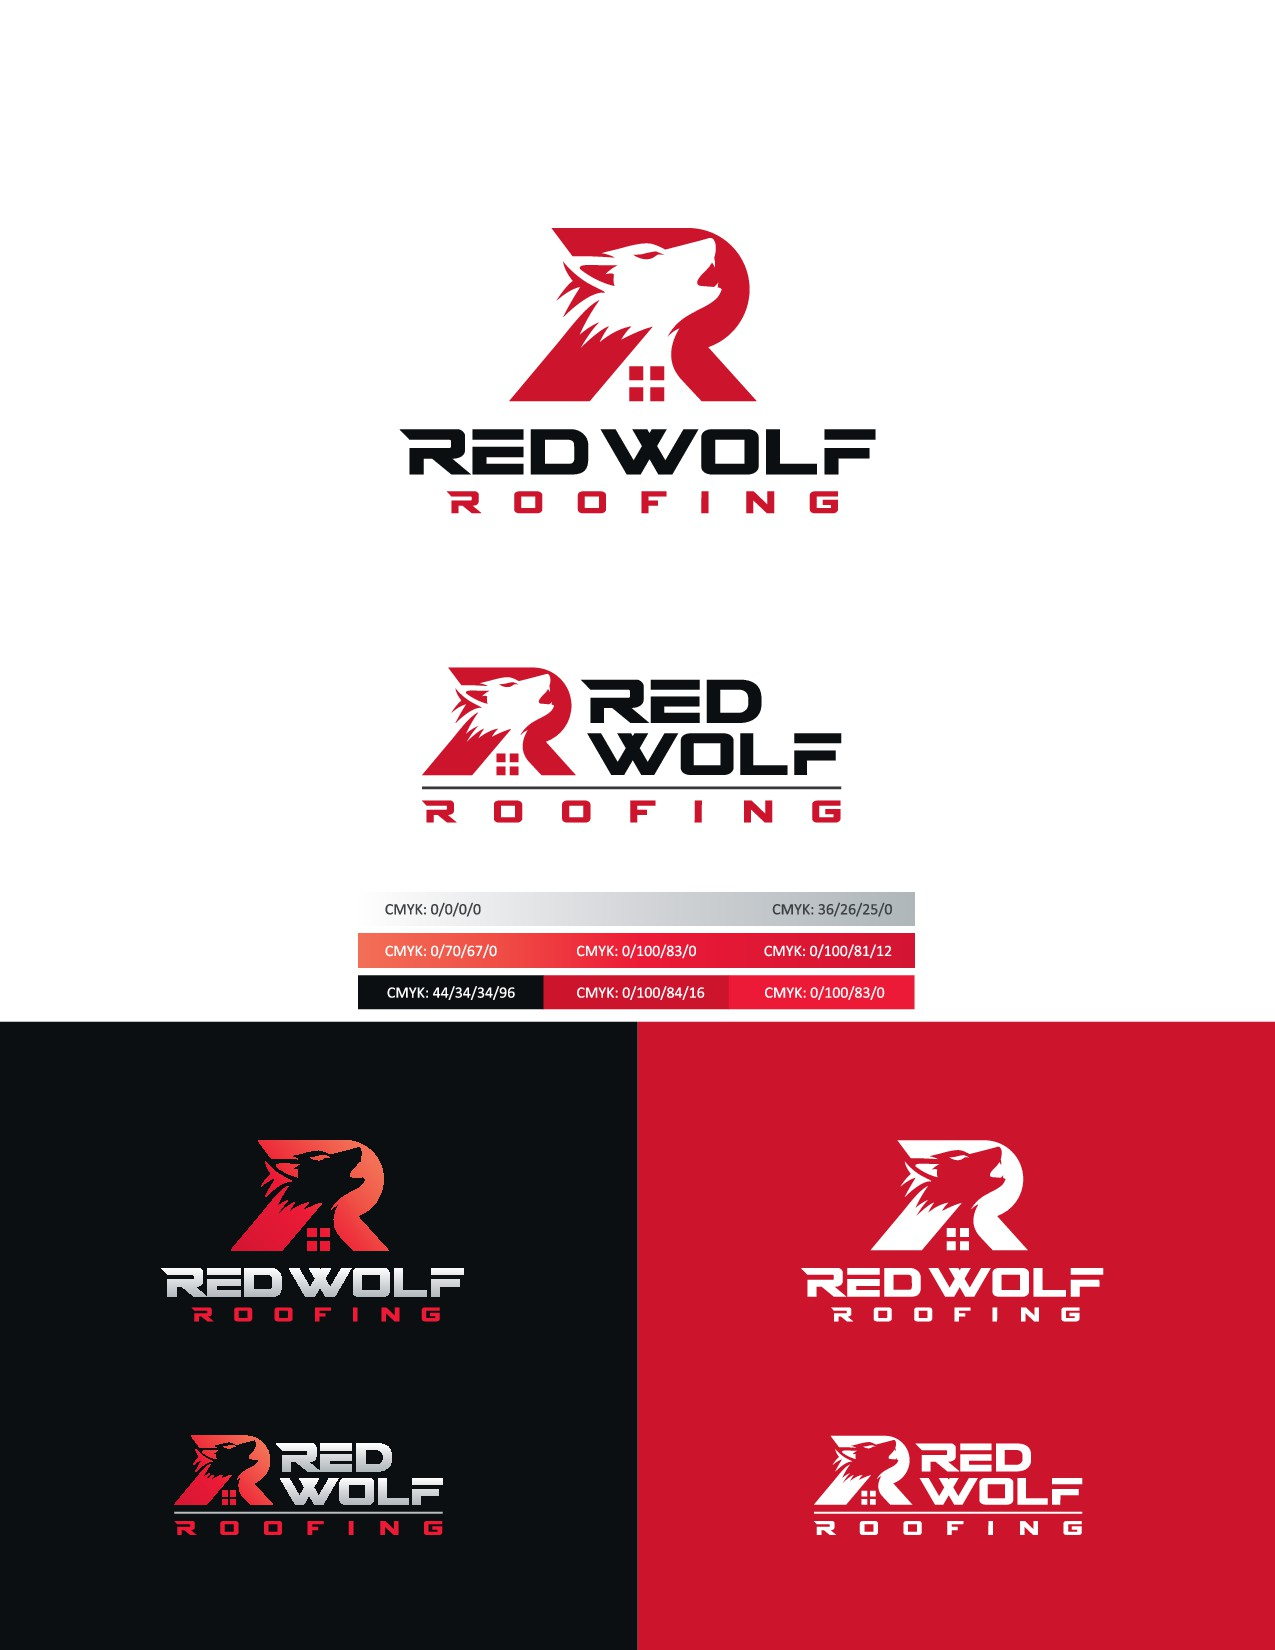 Eye Catching Design for Red Wolf Roofing company